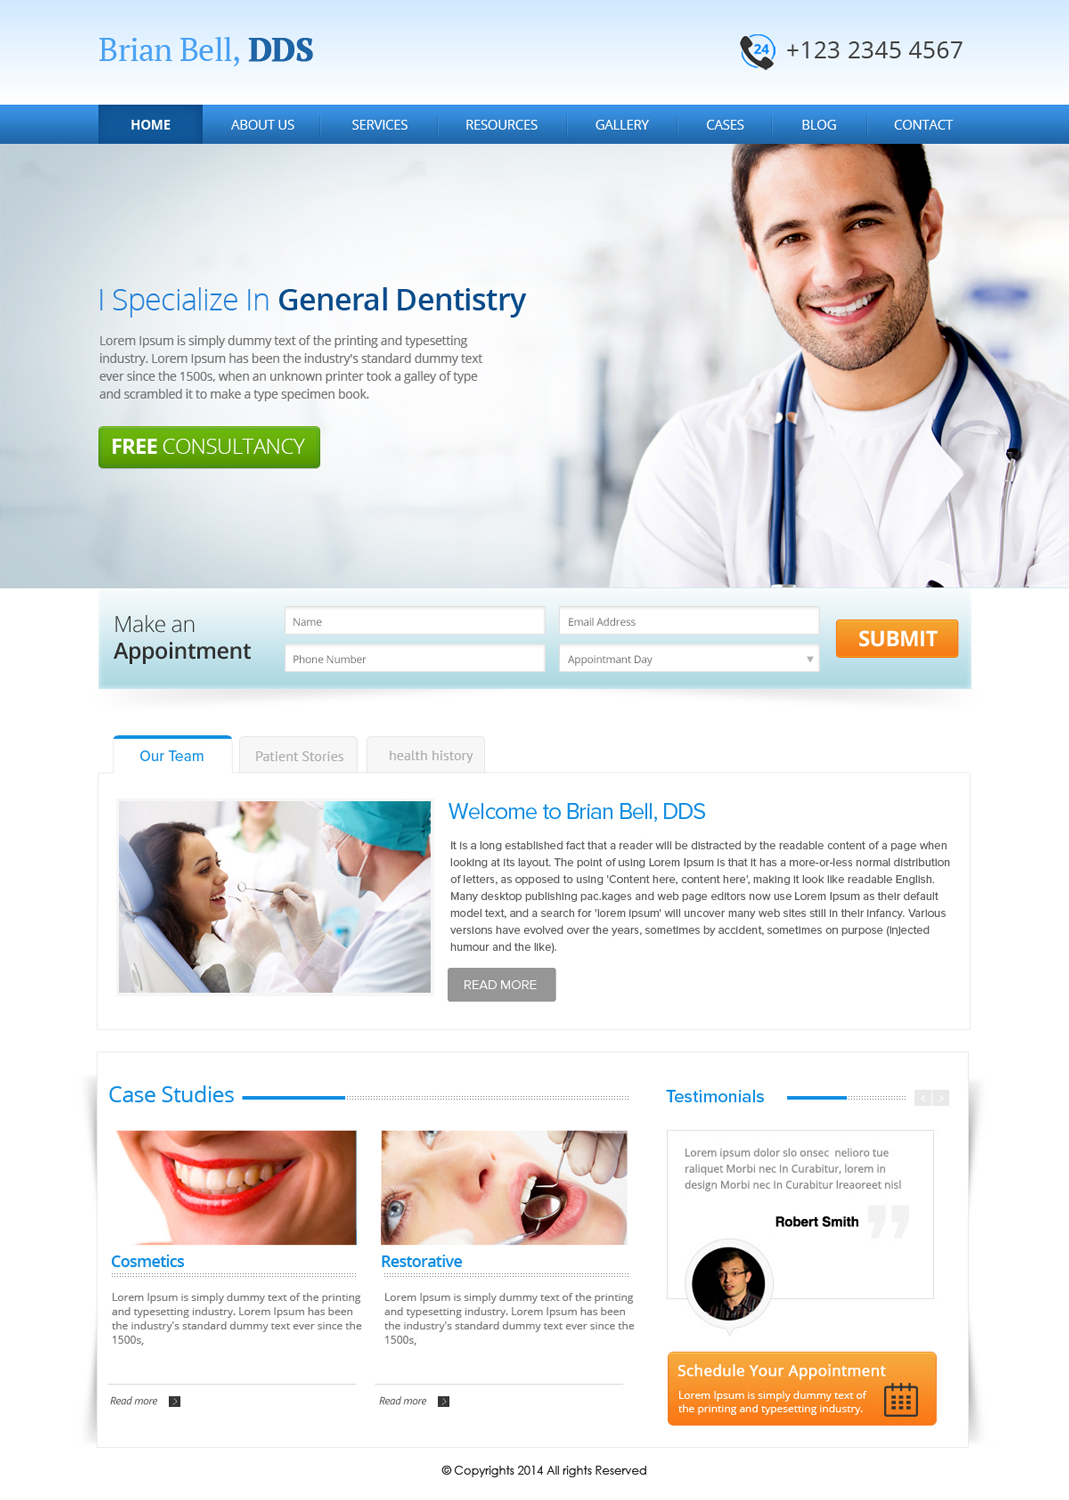 Web Design For Brian Bell Dds By Om Design 3624601